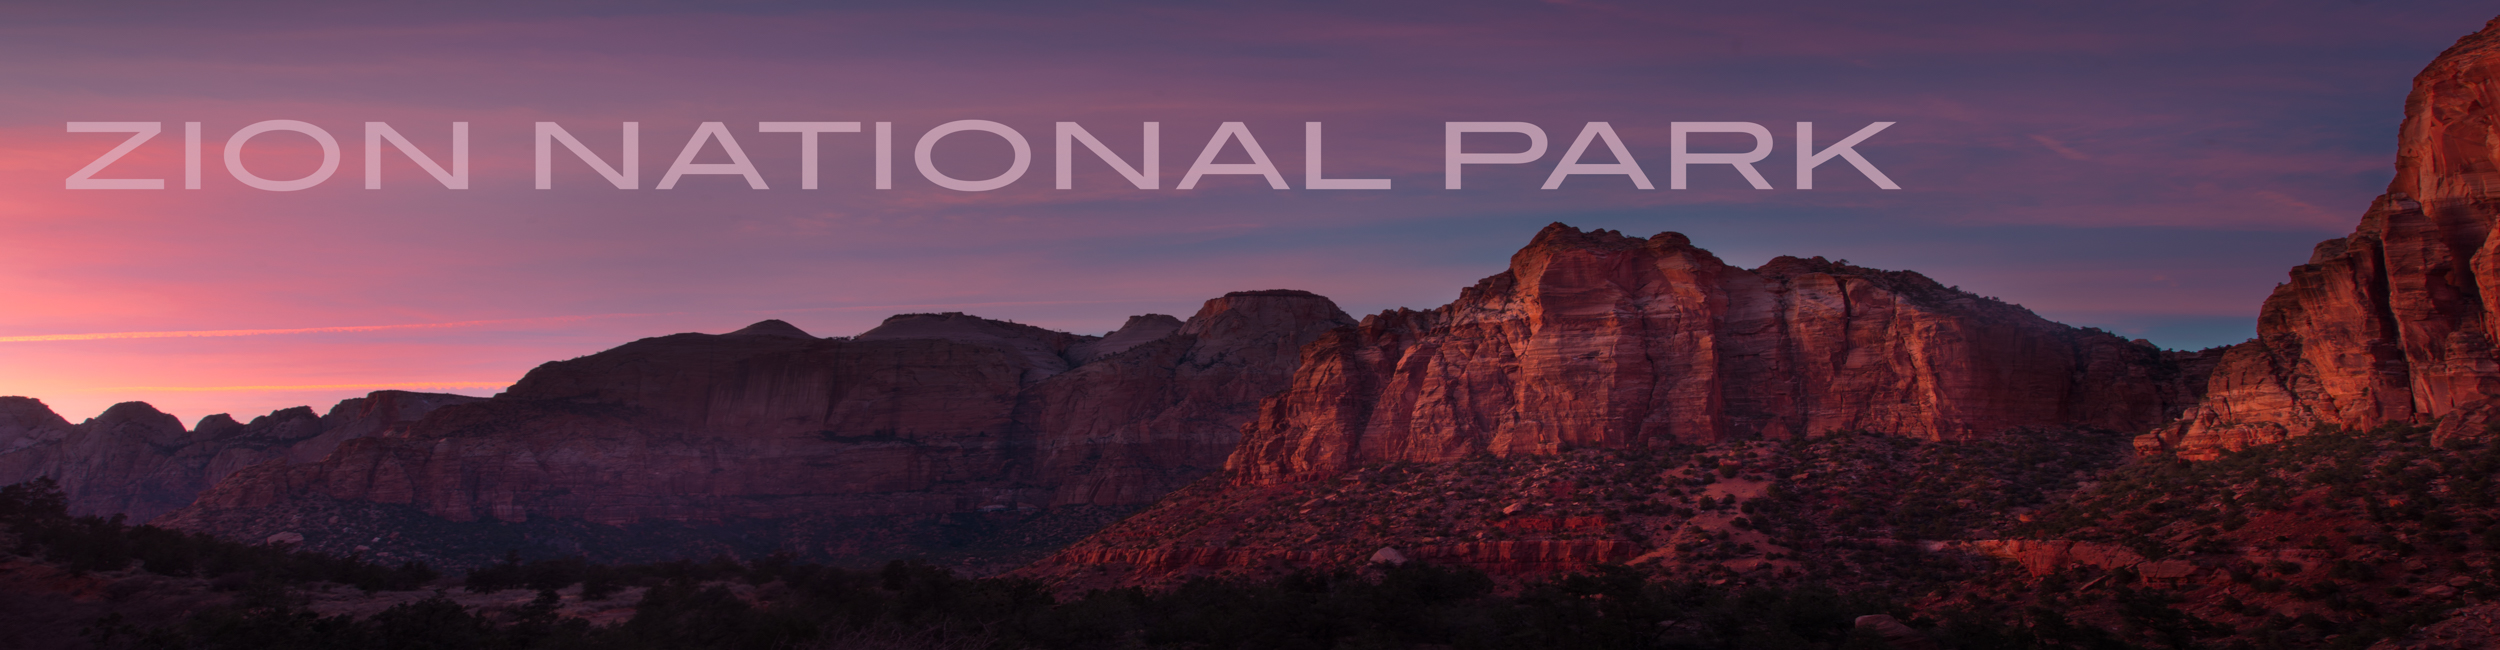 Zion.Page.Cover2.jpg